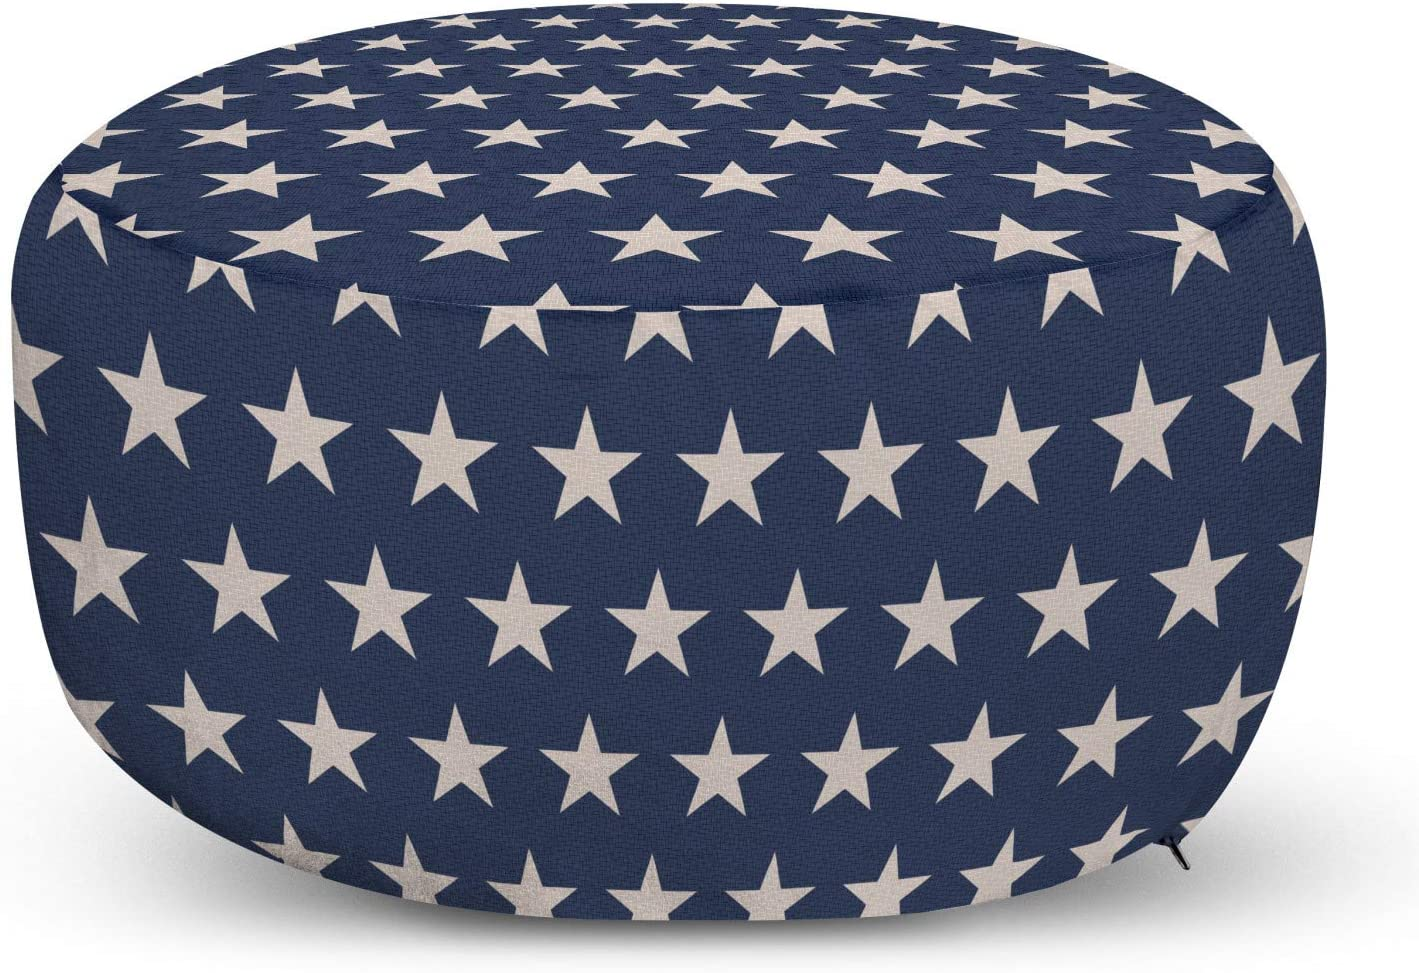 Ambesonne Star Ottoman Pouf, Patriotic Star of The American Flag Independence Themeds of Freedom, Decorative Soft Foot Rest with Removable Cover Living Room and Bedroom, Blue Beige